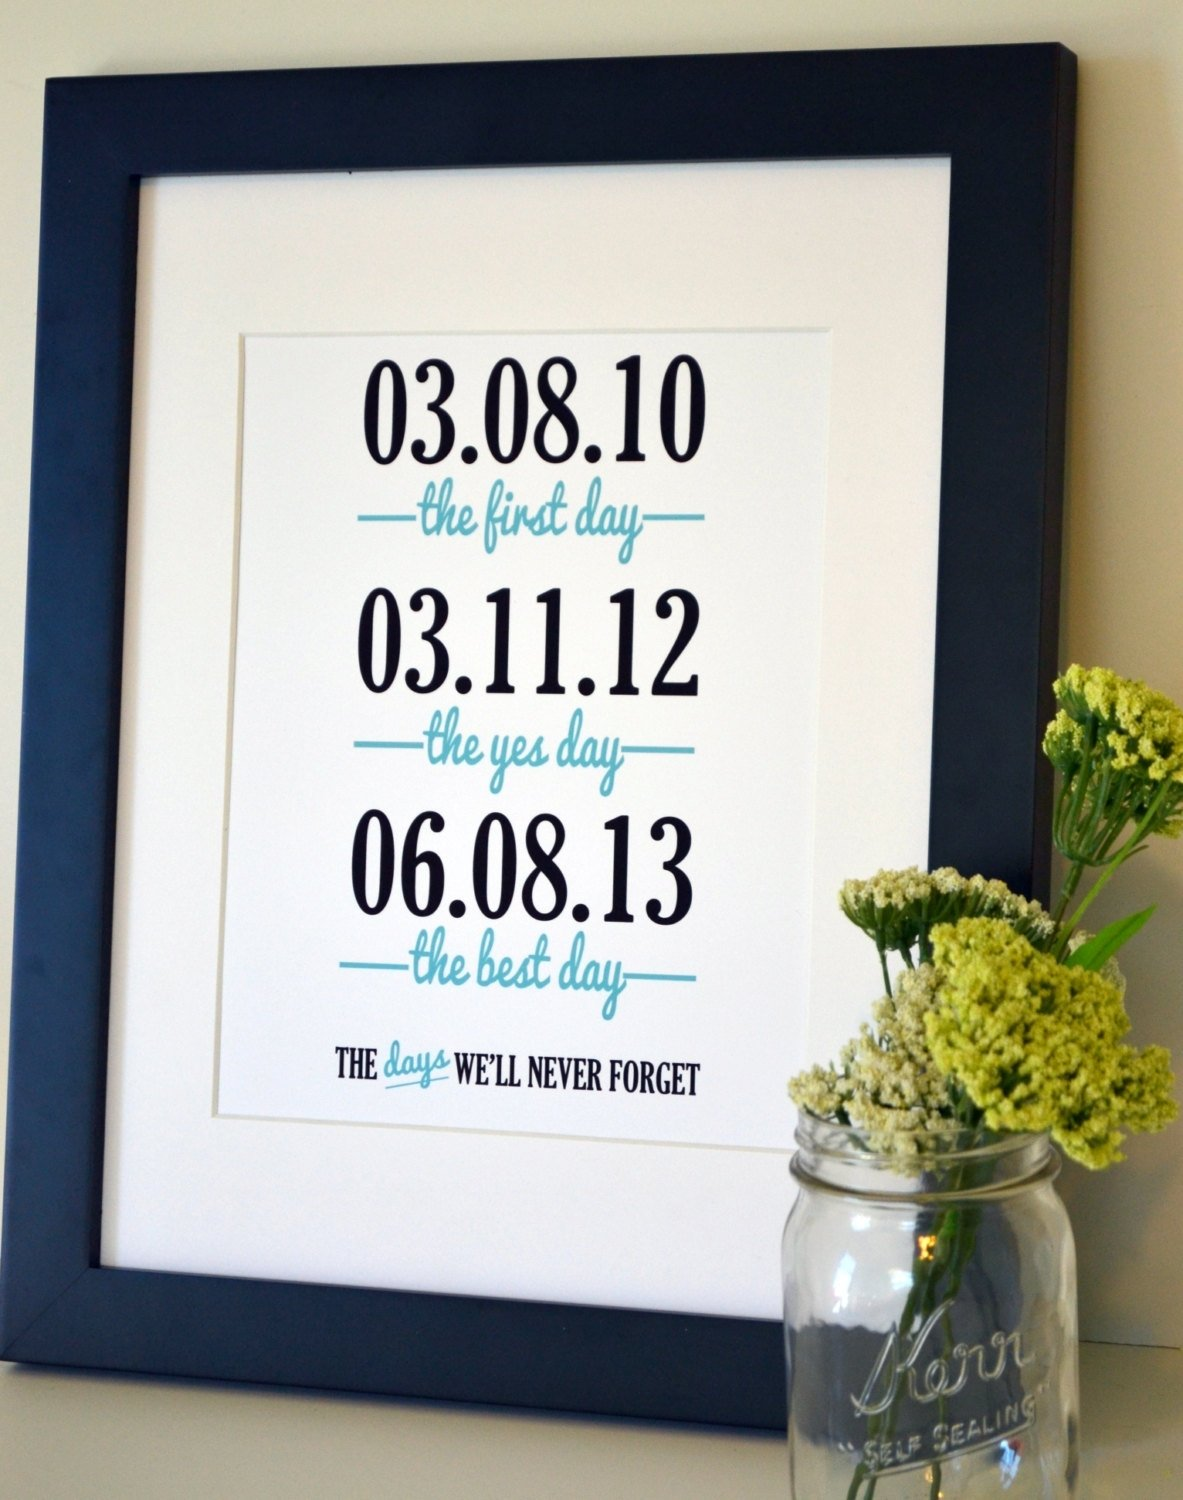 10 Beautiful 3 Year Anniversary Ideas For Her good first wedding anniversary gift ideas b32 on images selection 7 2021